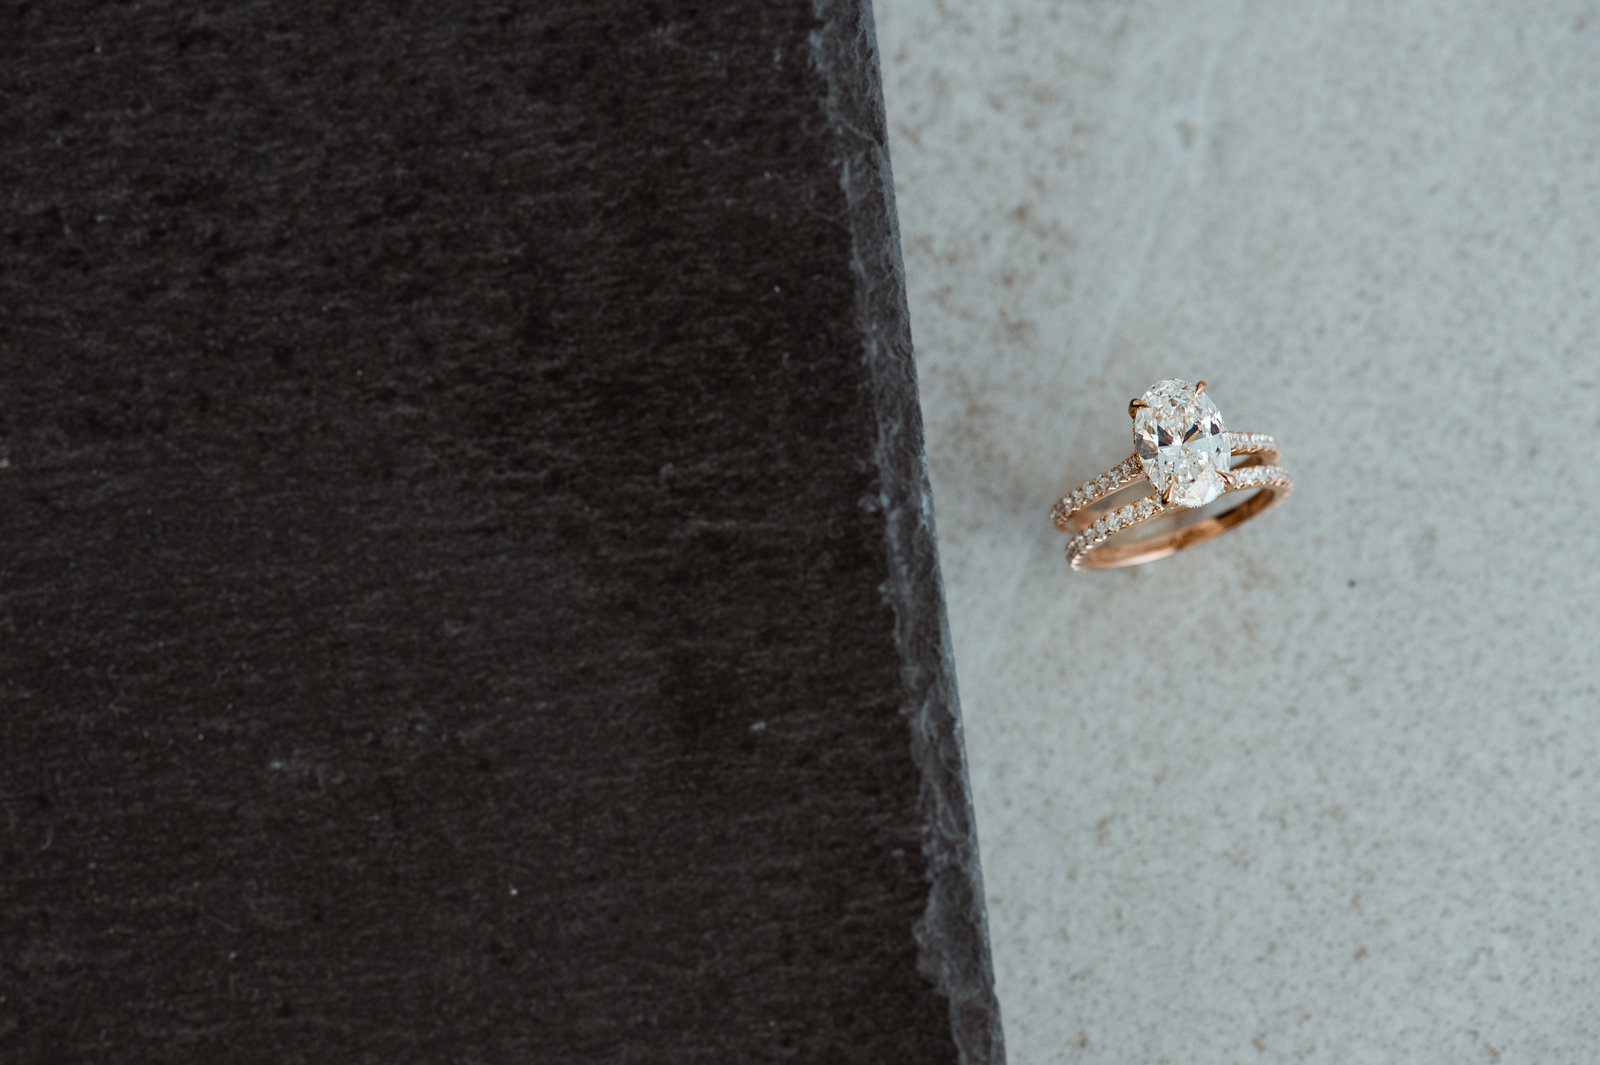 oval diamond, oval diamond engagement ring, custom engagement ring, bespoke engagement ring, rose gold engagement ring, custom jewelry, rose gold wedding band, oval solitaire, custom diamond jewelry, 2 carat oval